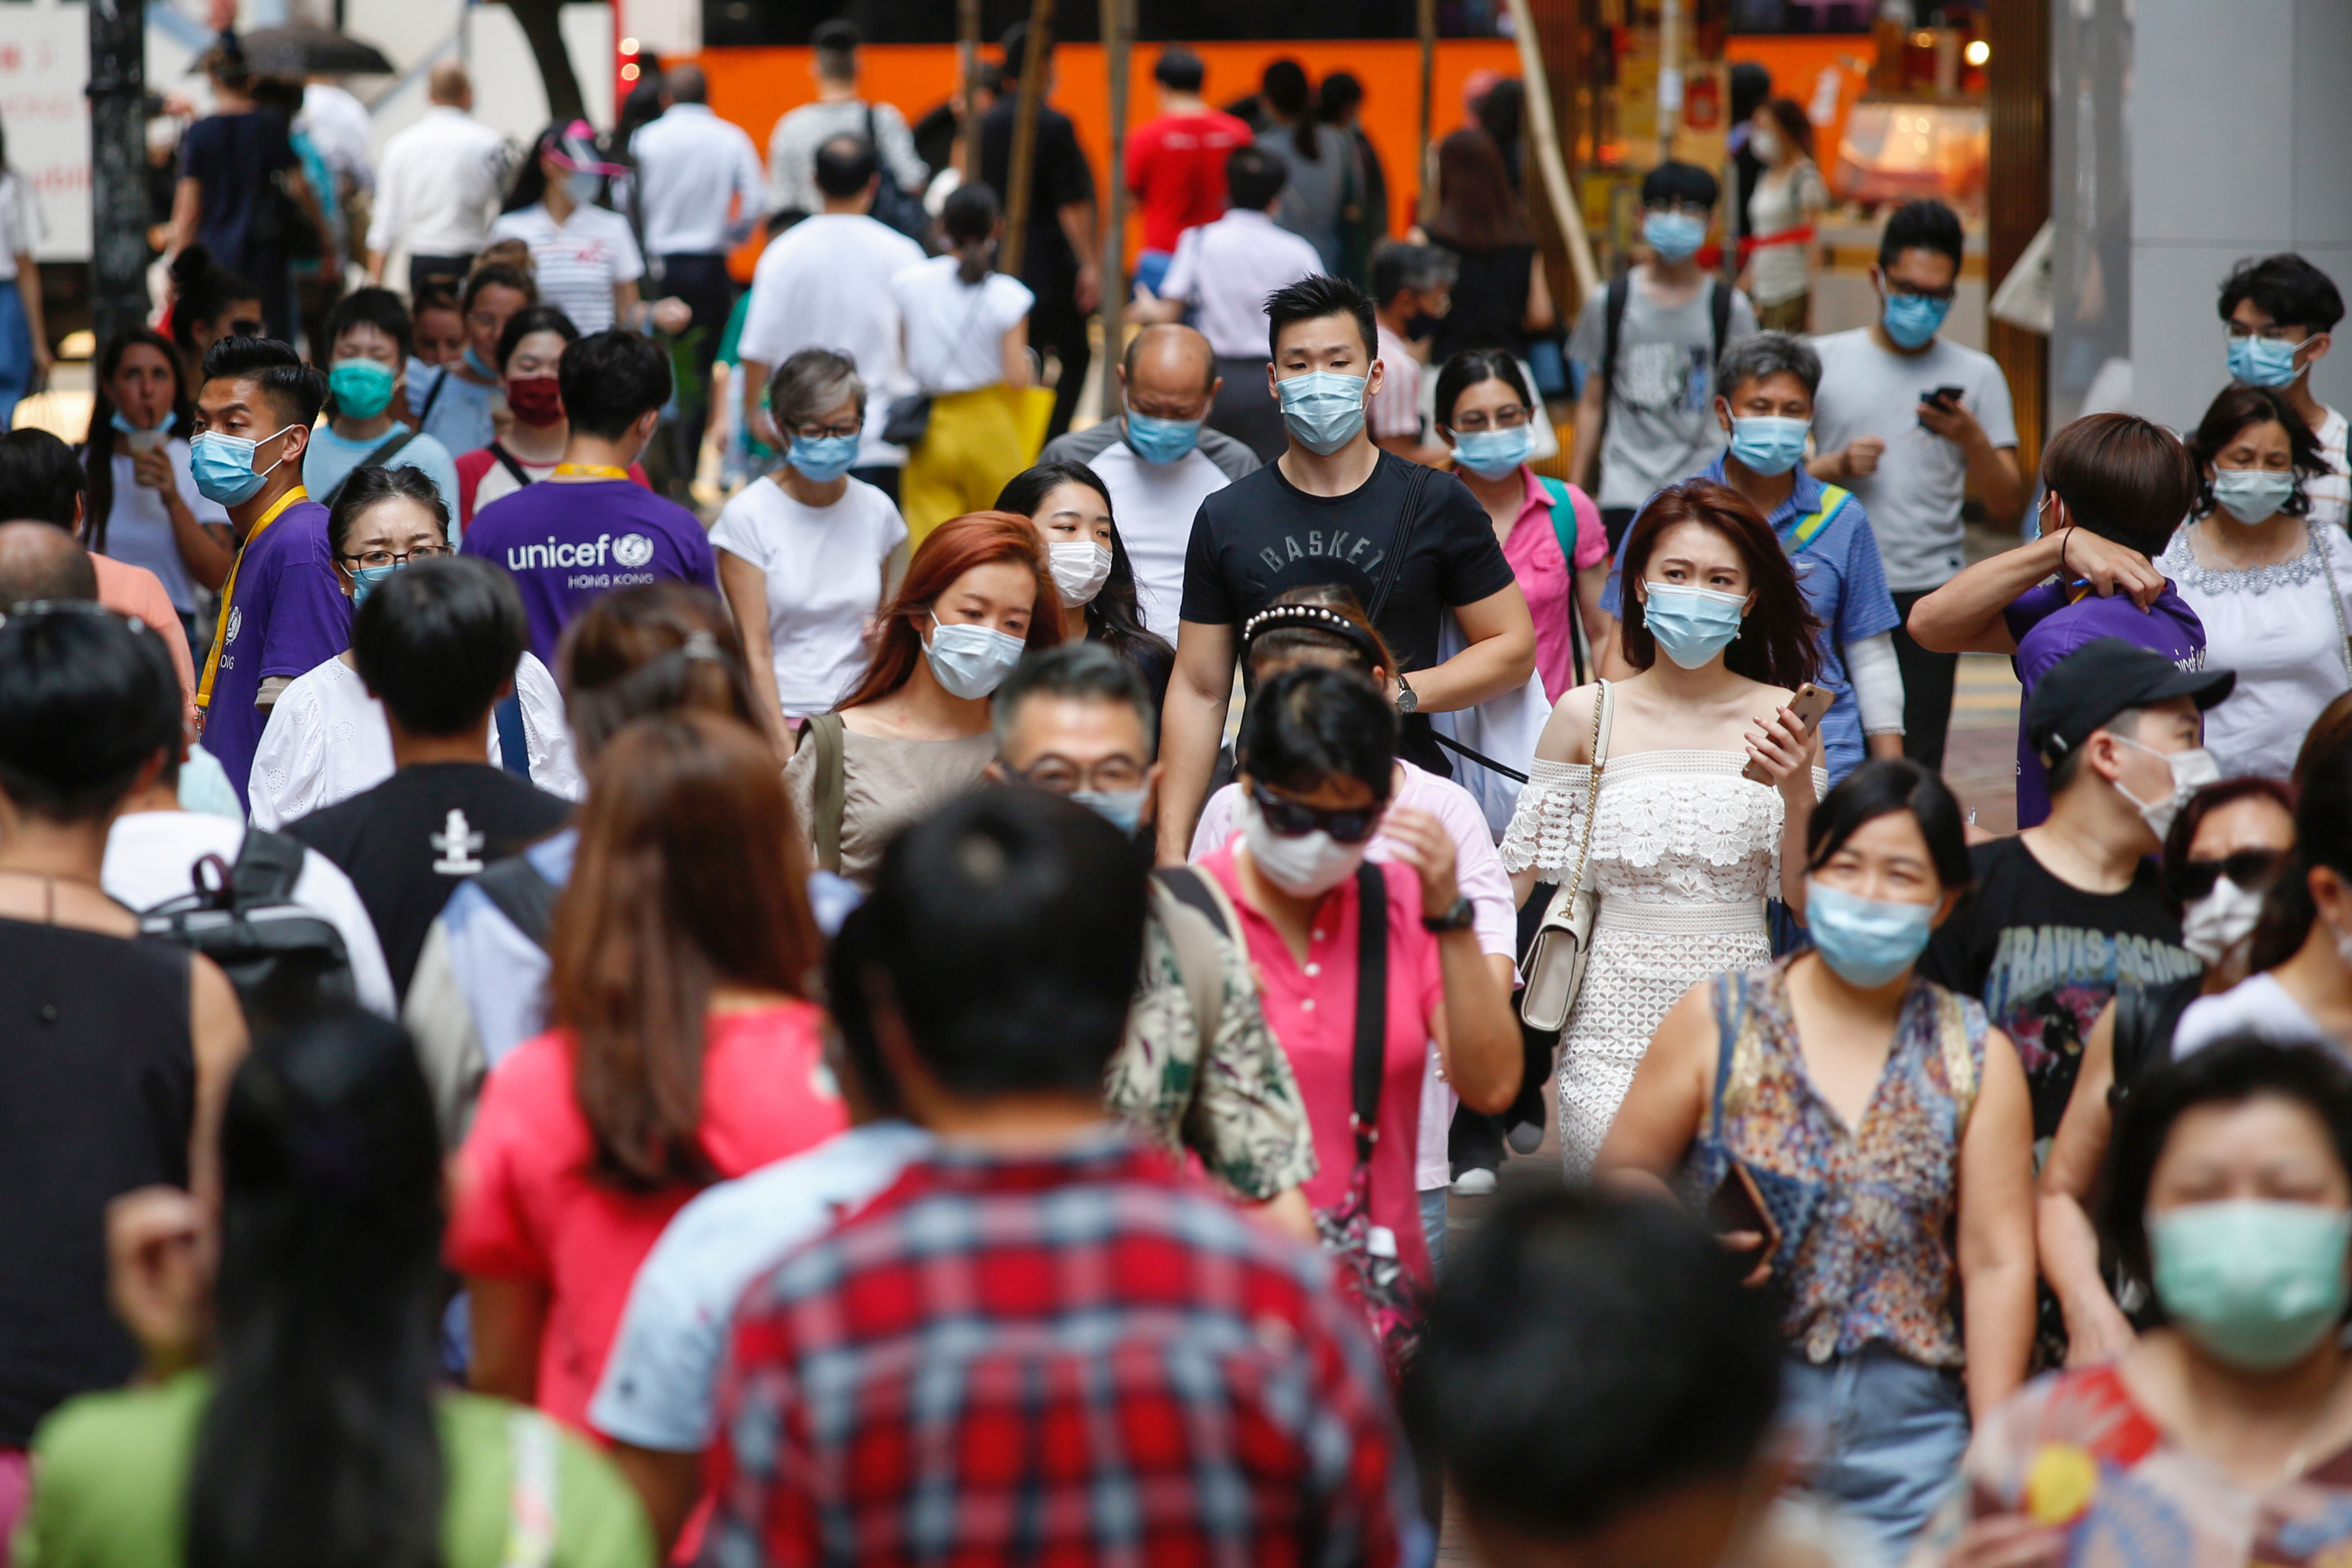 People wear surgical masks following the coronavirus disease (COVID-19) outbreak in Hong Kong, China July 17, 2020. REUTERS/Tyrone Siu - RC2XUH9ASMLF